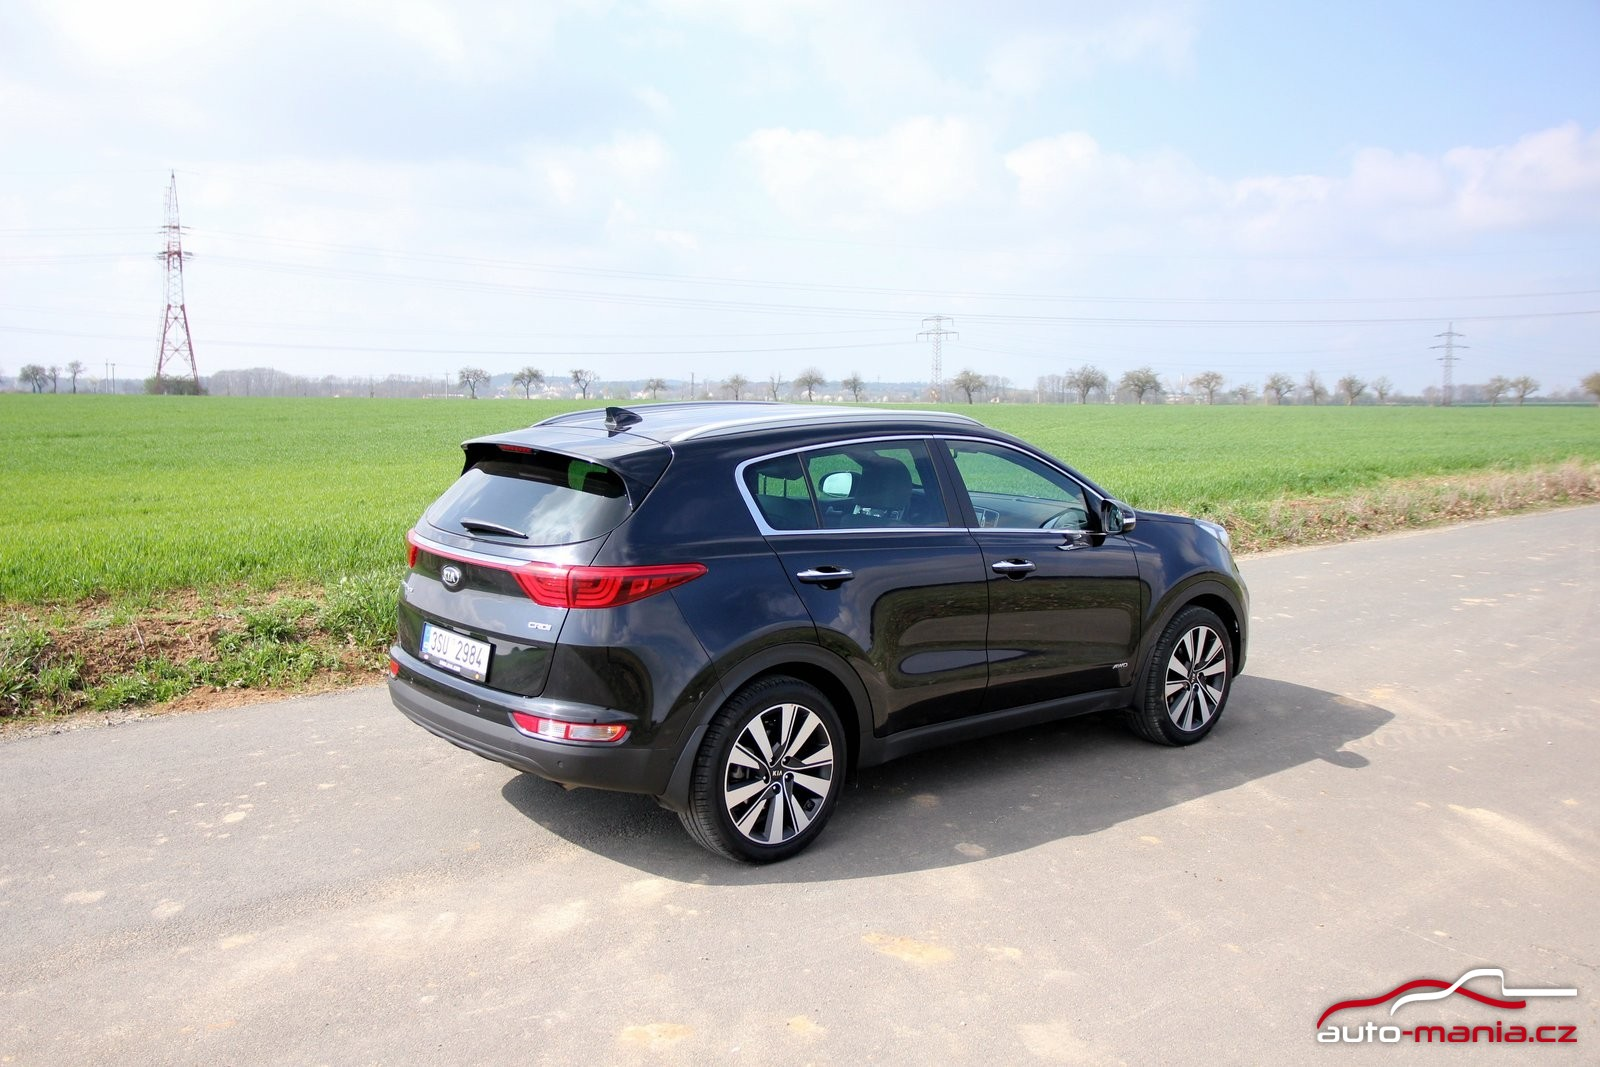 test kia sportage 2 0 crdi 136 kw 4x4 at. Black Bedroom Furniture Sets. Home Design Ideas